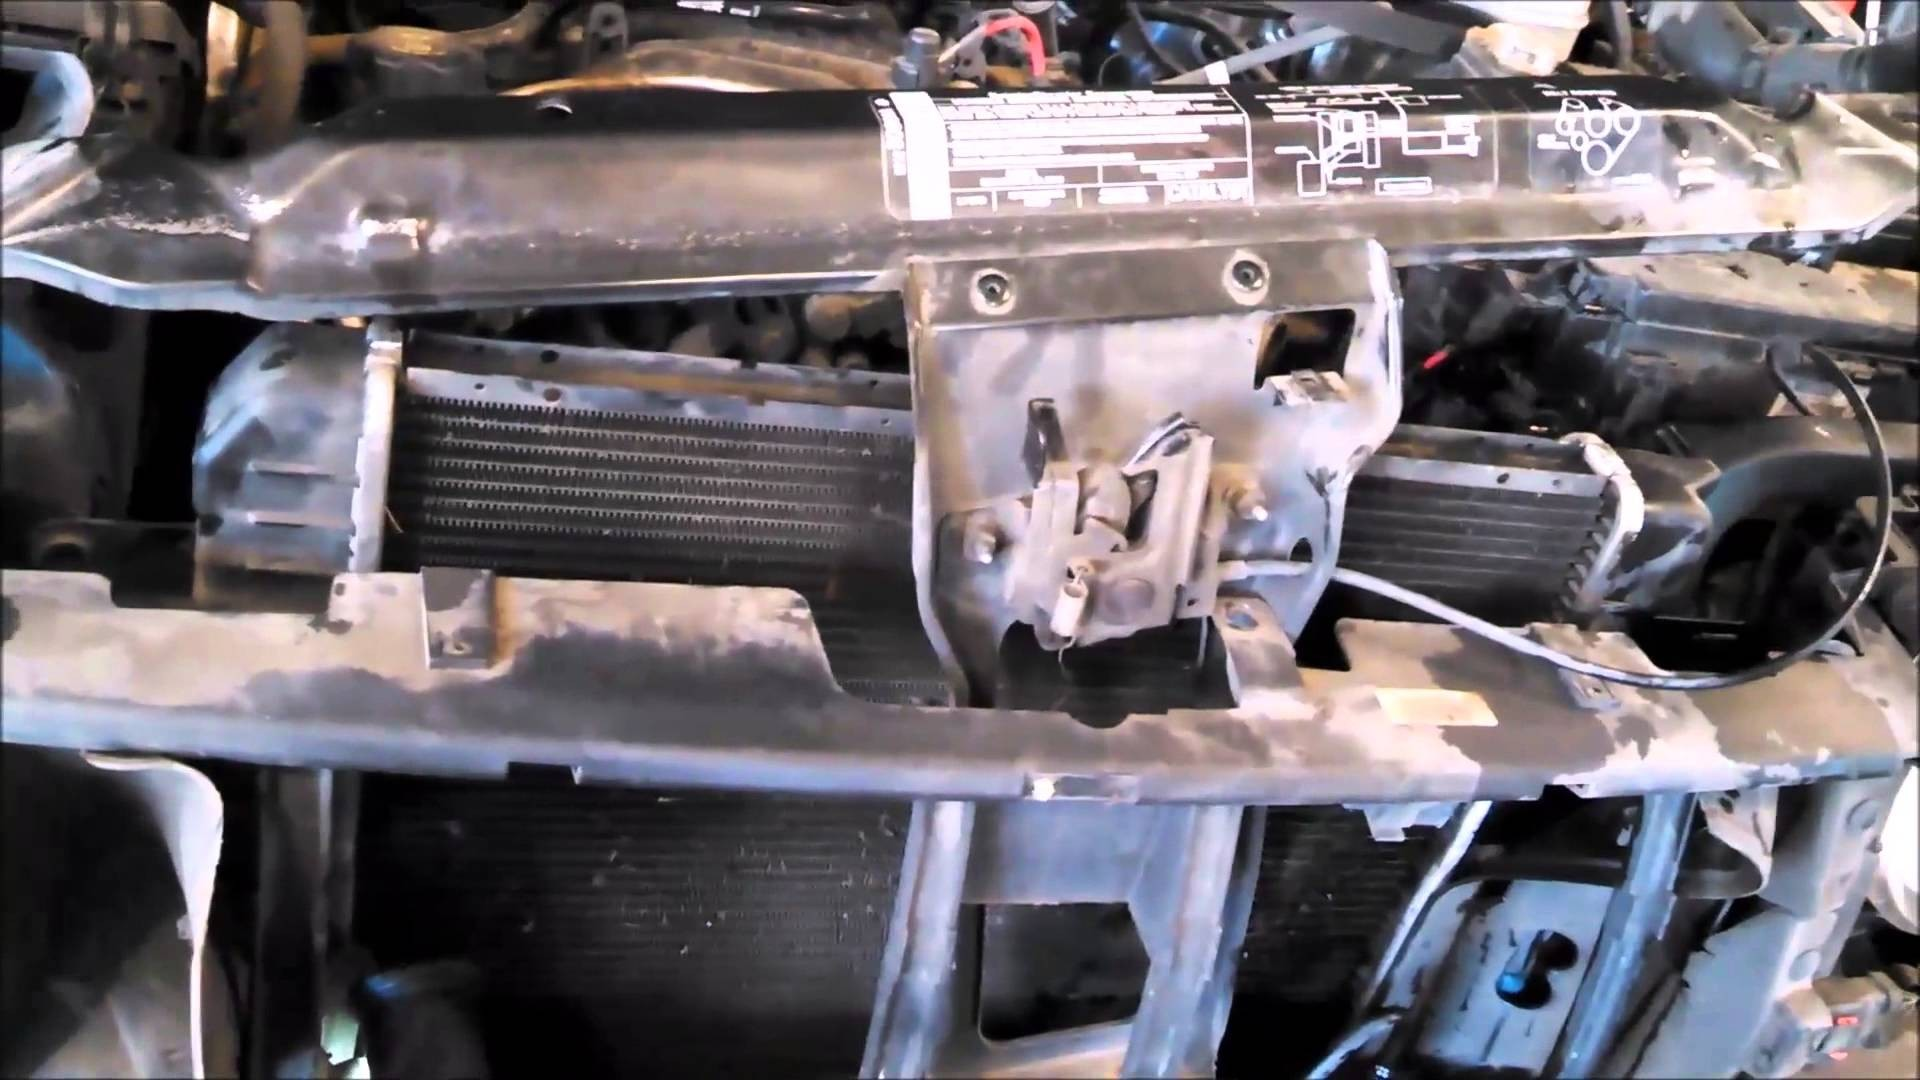 2003 Jeep Liberty Engine Diagram Car 3 7l Jeep Engine Diagram How to Install Replace Engine Water Of 2003 Jeep Liberty Engine Diagram